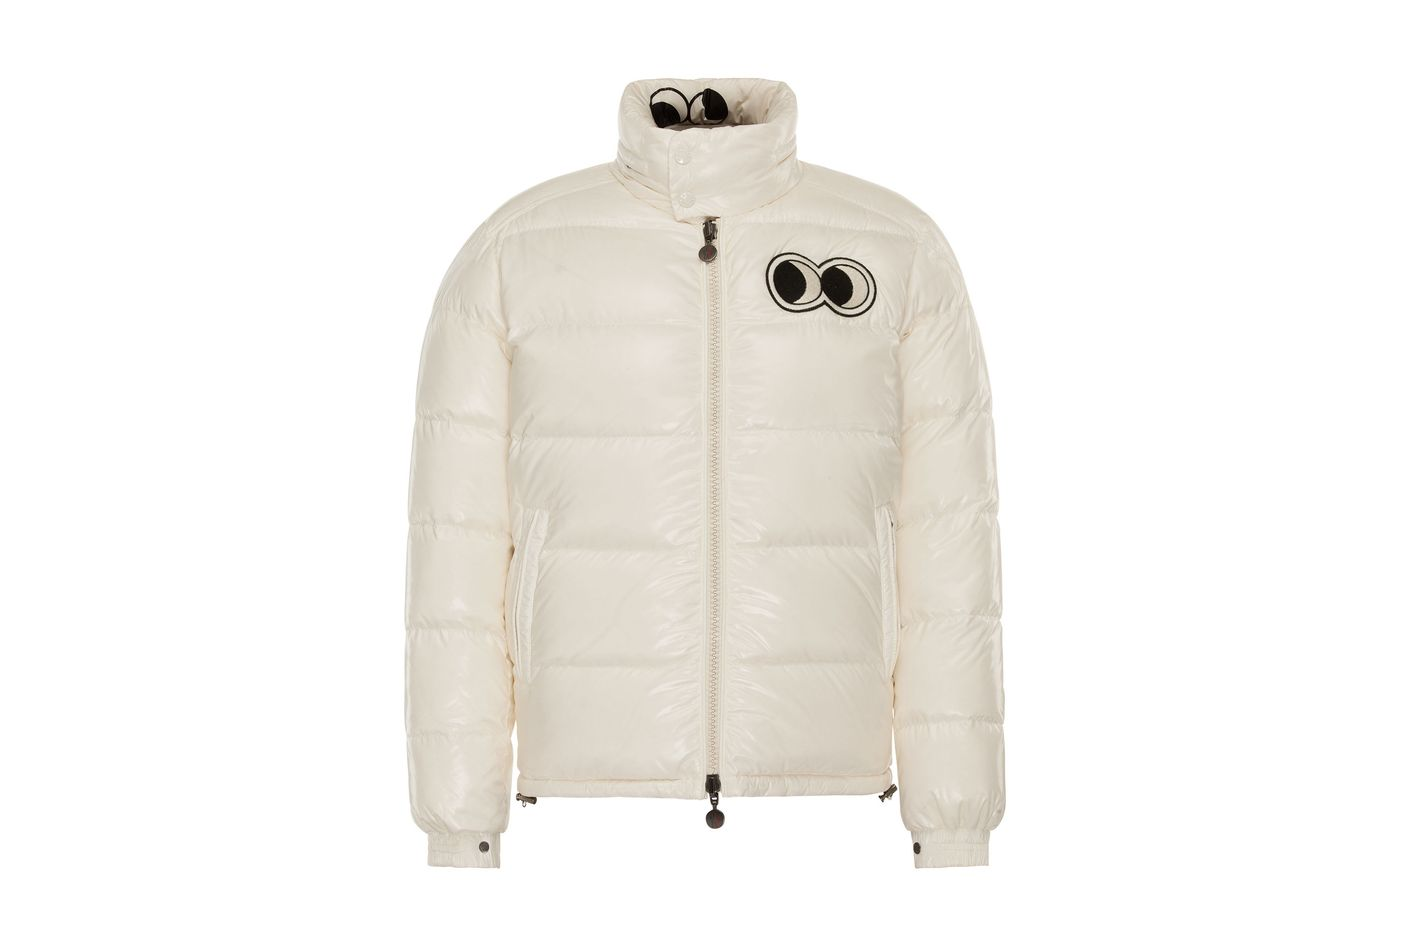 moncler friends with you jacket